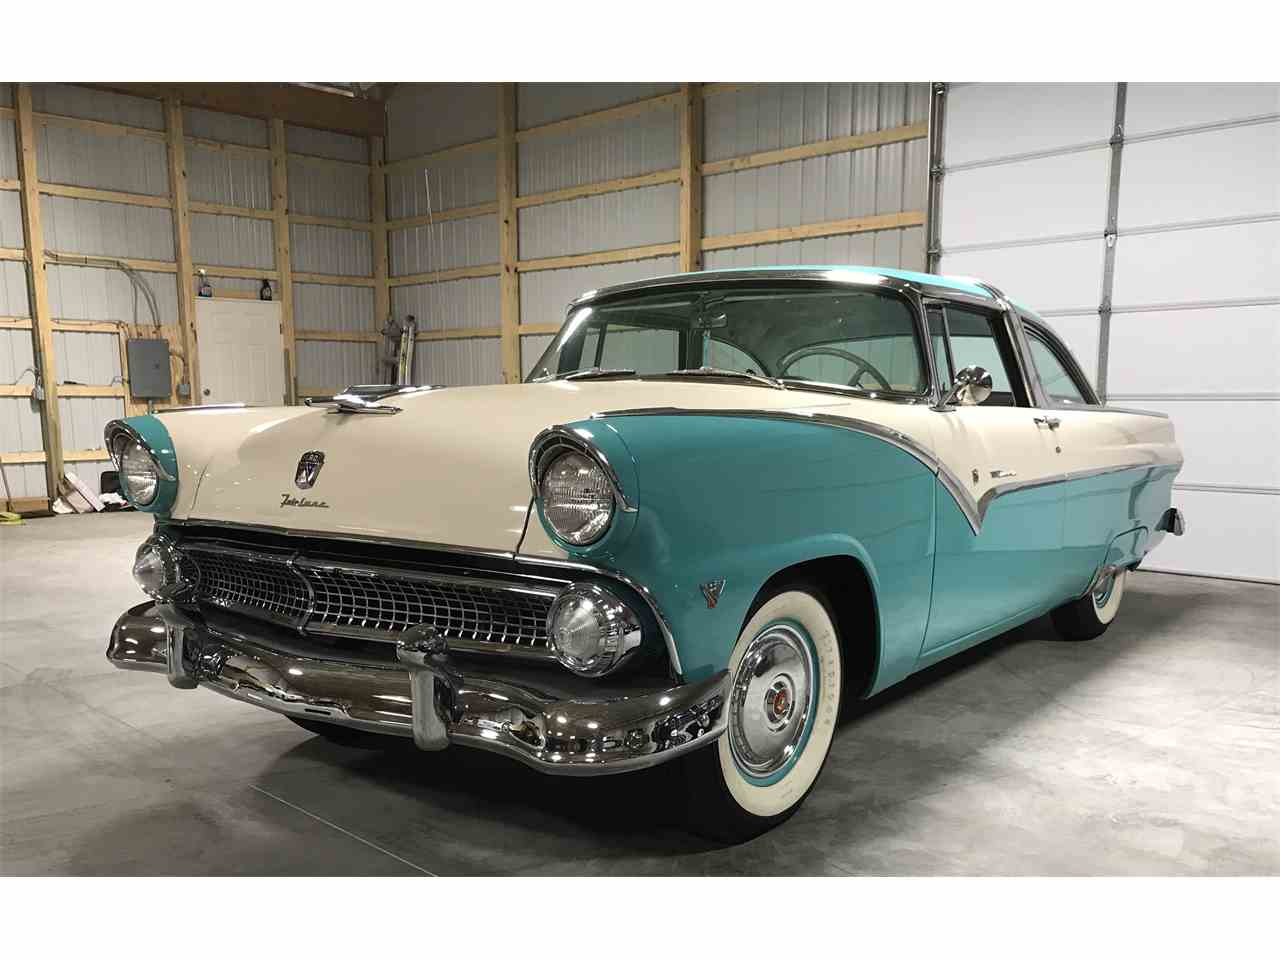 1955 ford fairlane crown victoria blog cars on line - 1955 Ford Crown Victoria Cc 982064